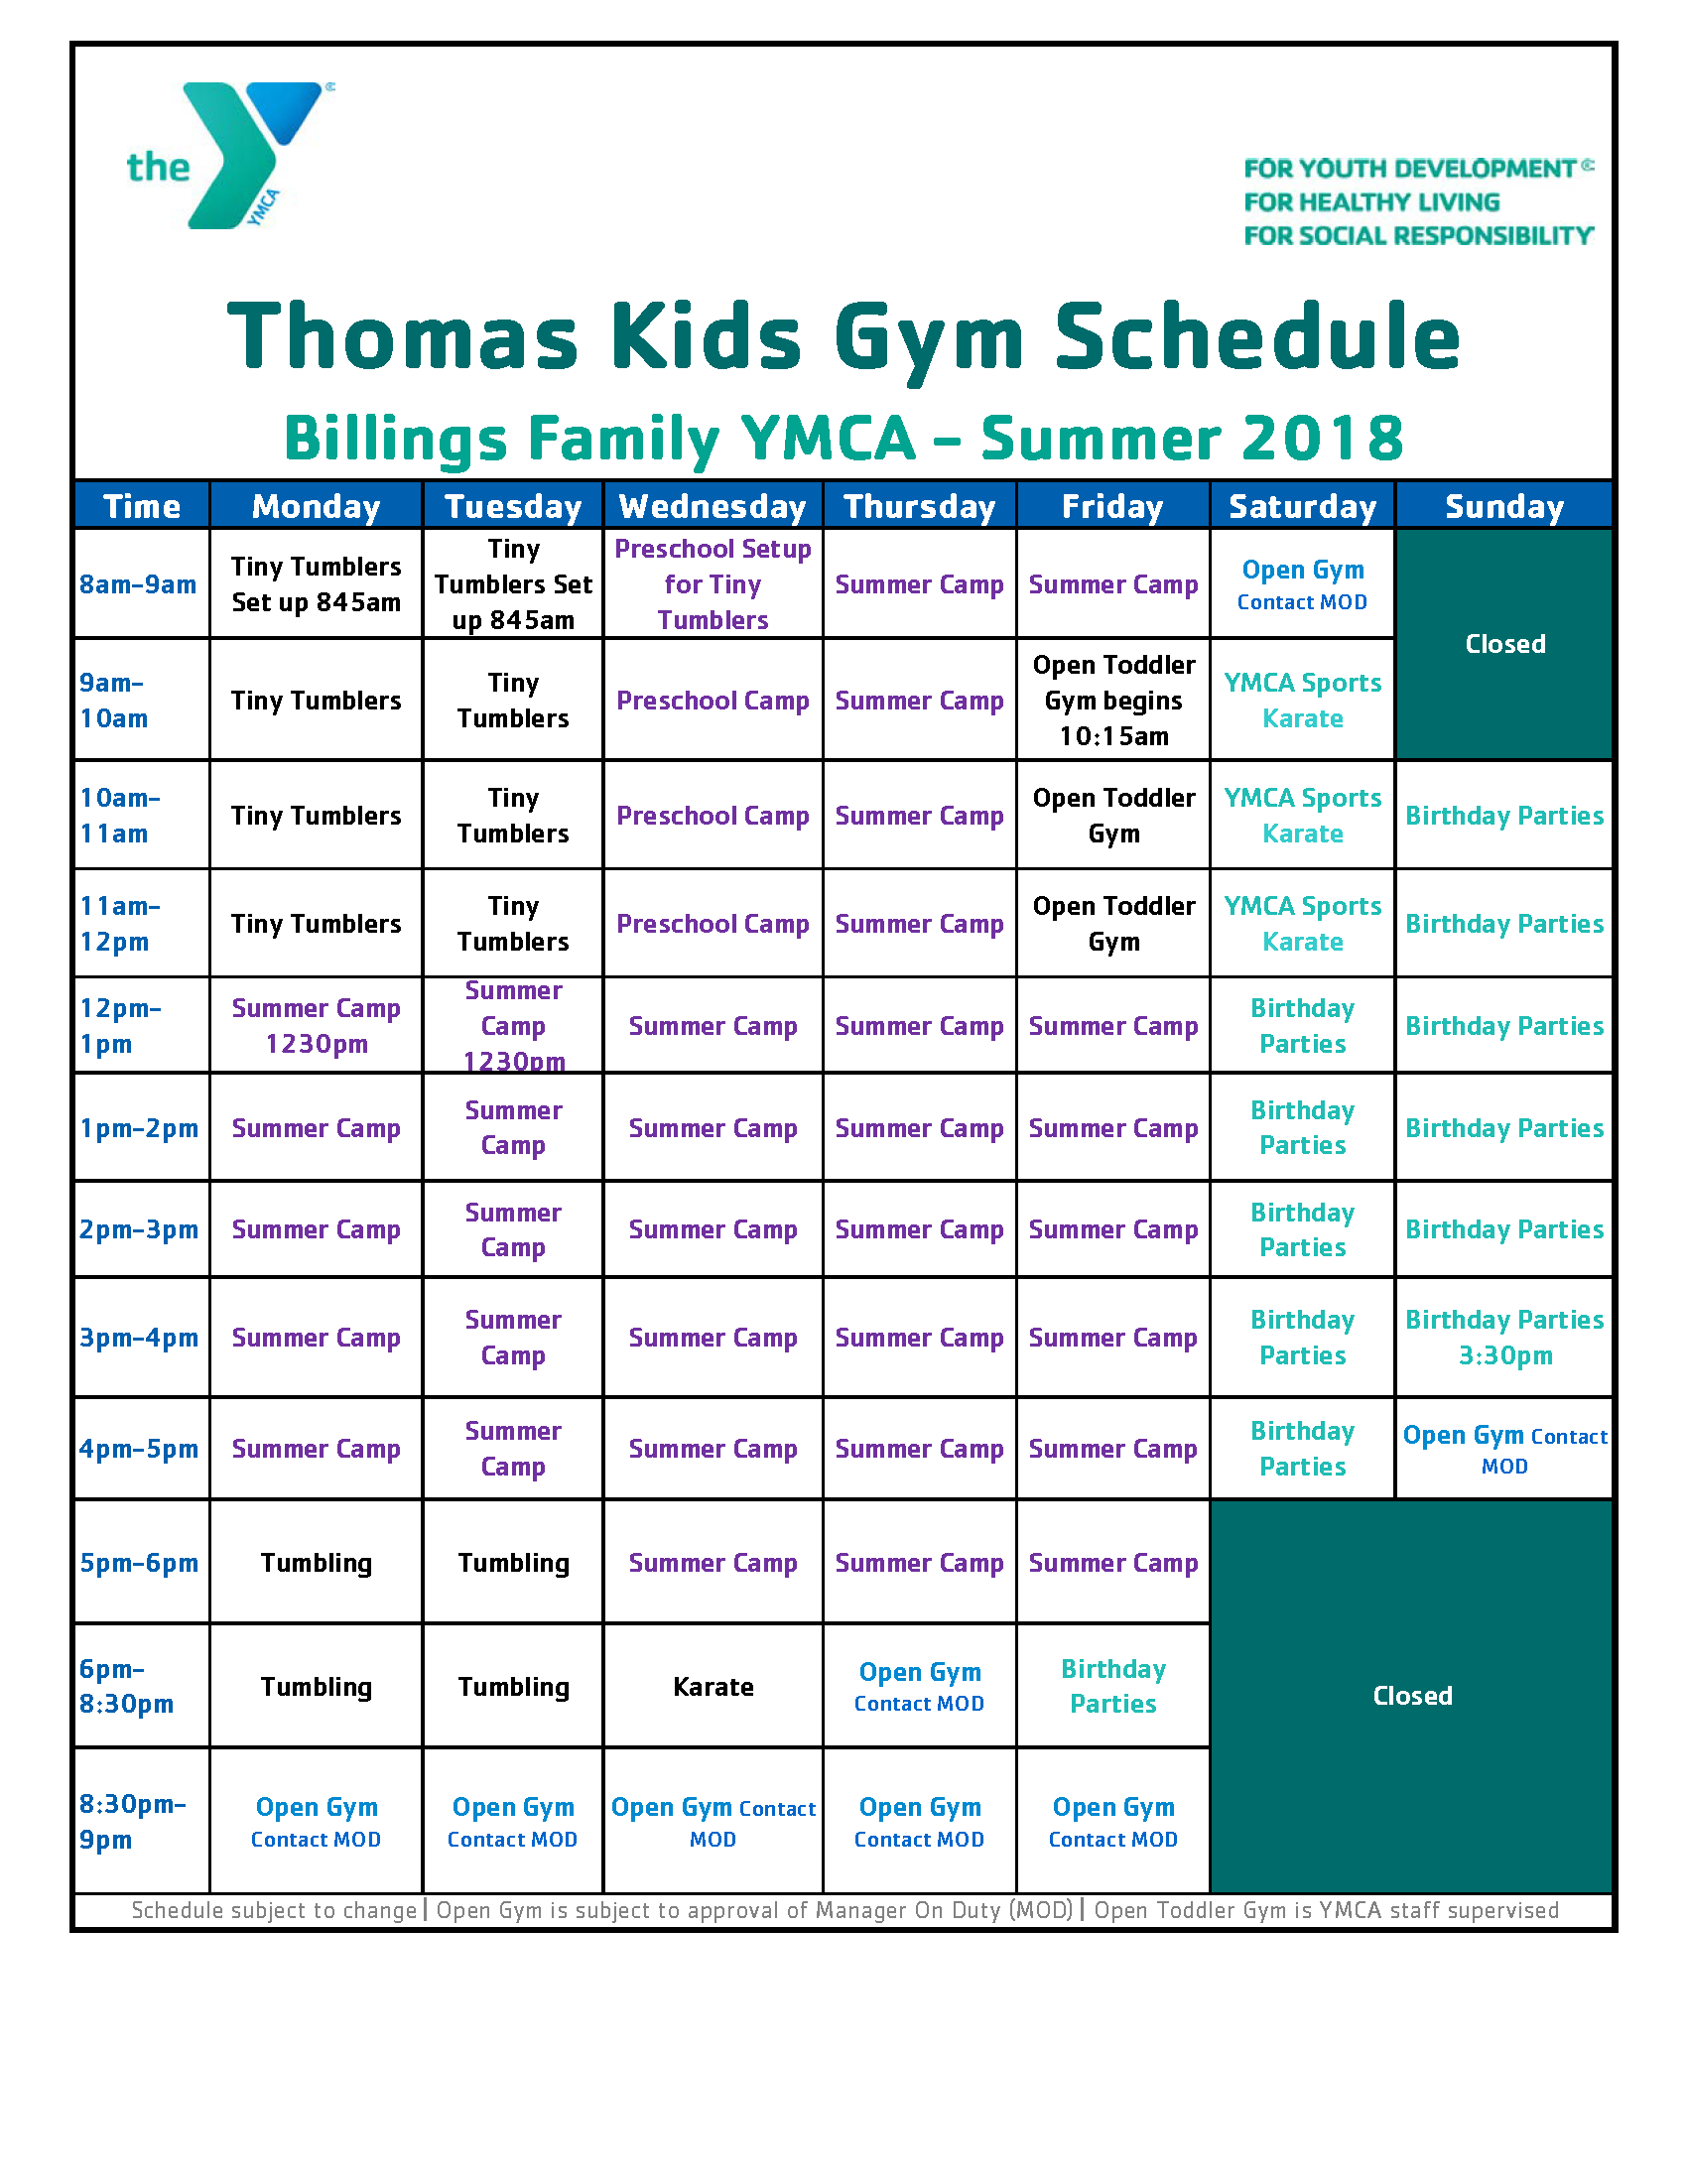 TKG GYM SCHEDULE